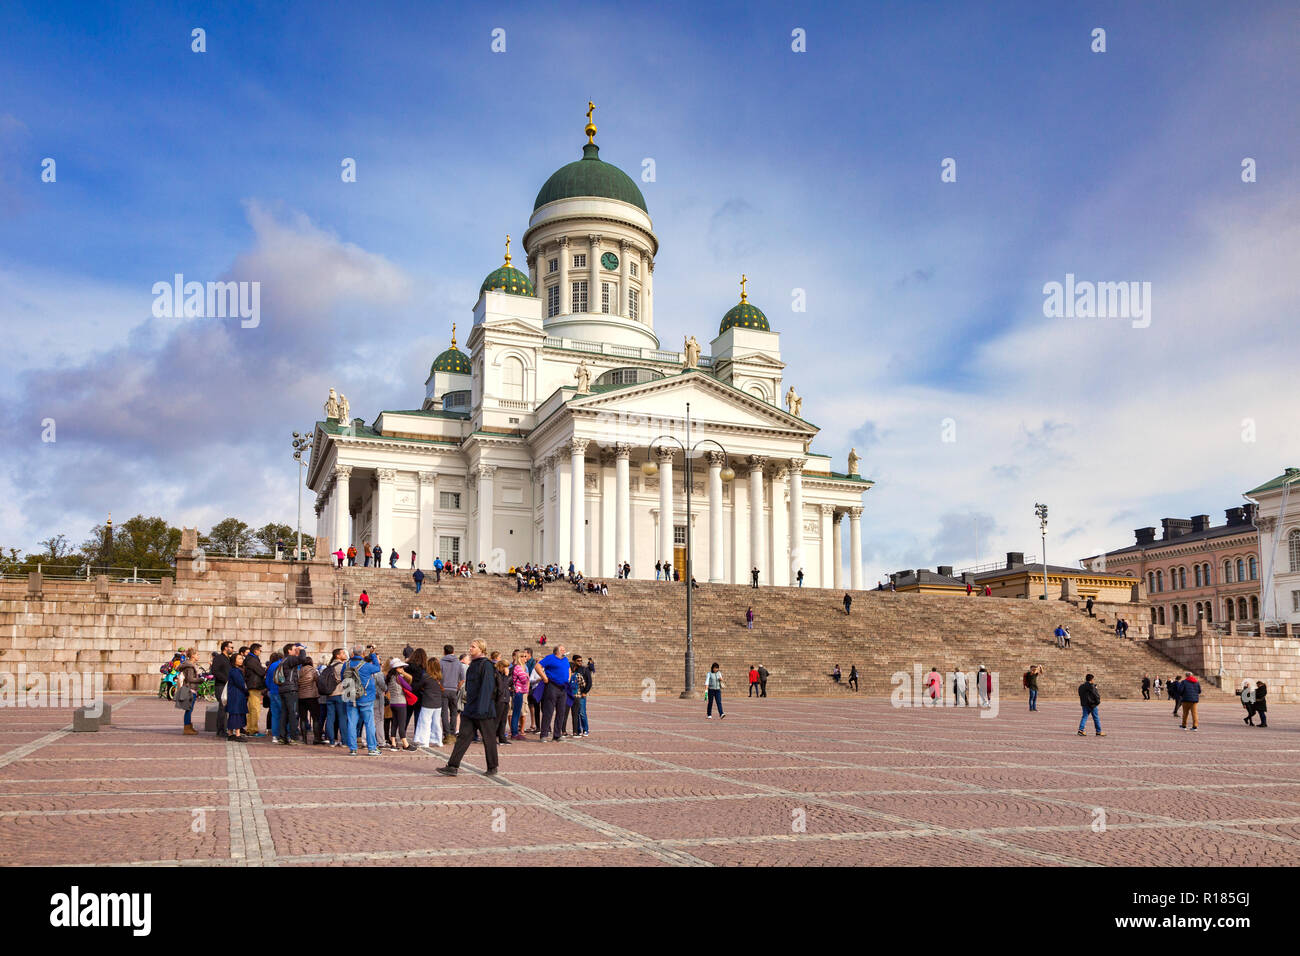 20 September 2018: Helsinki, Finland - Tour group at Helsinki Cathedral,  the Finnish Evangelical Lutheran cathedral of the Diocese of Helsinki, in Se - Stock Image